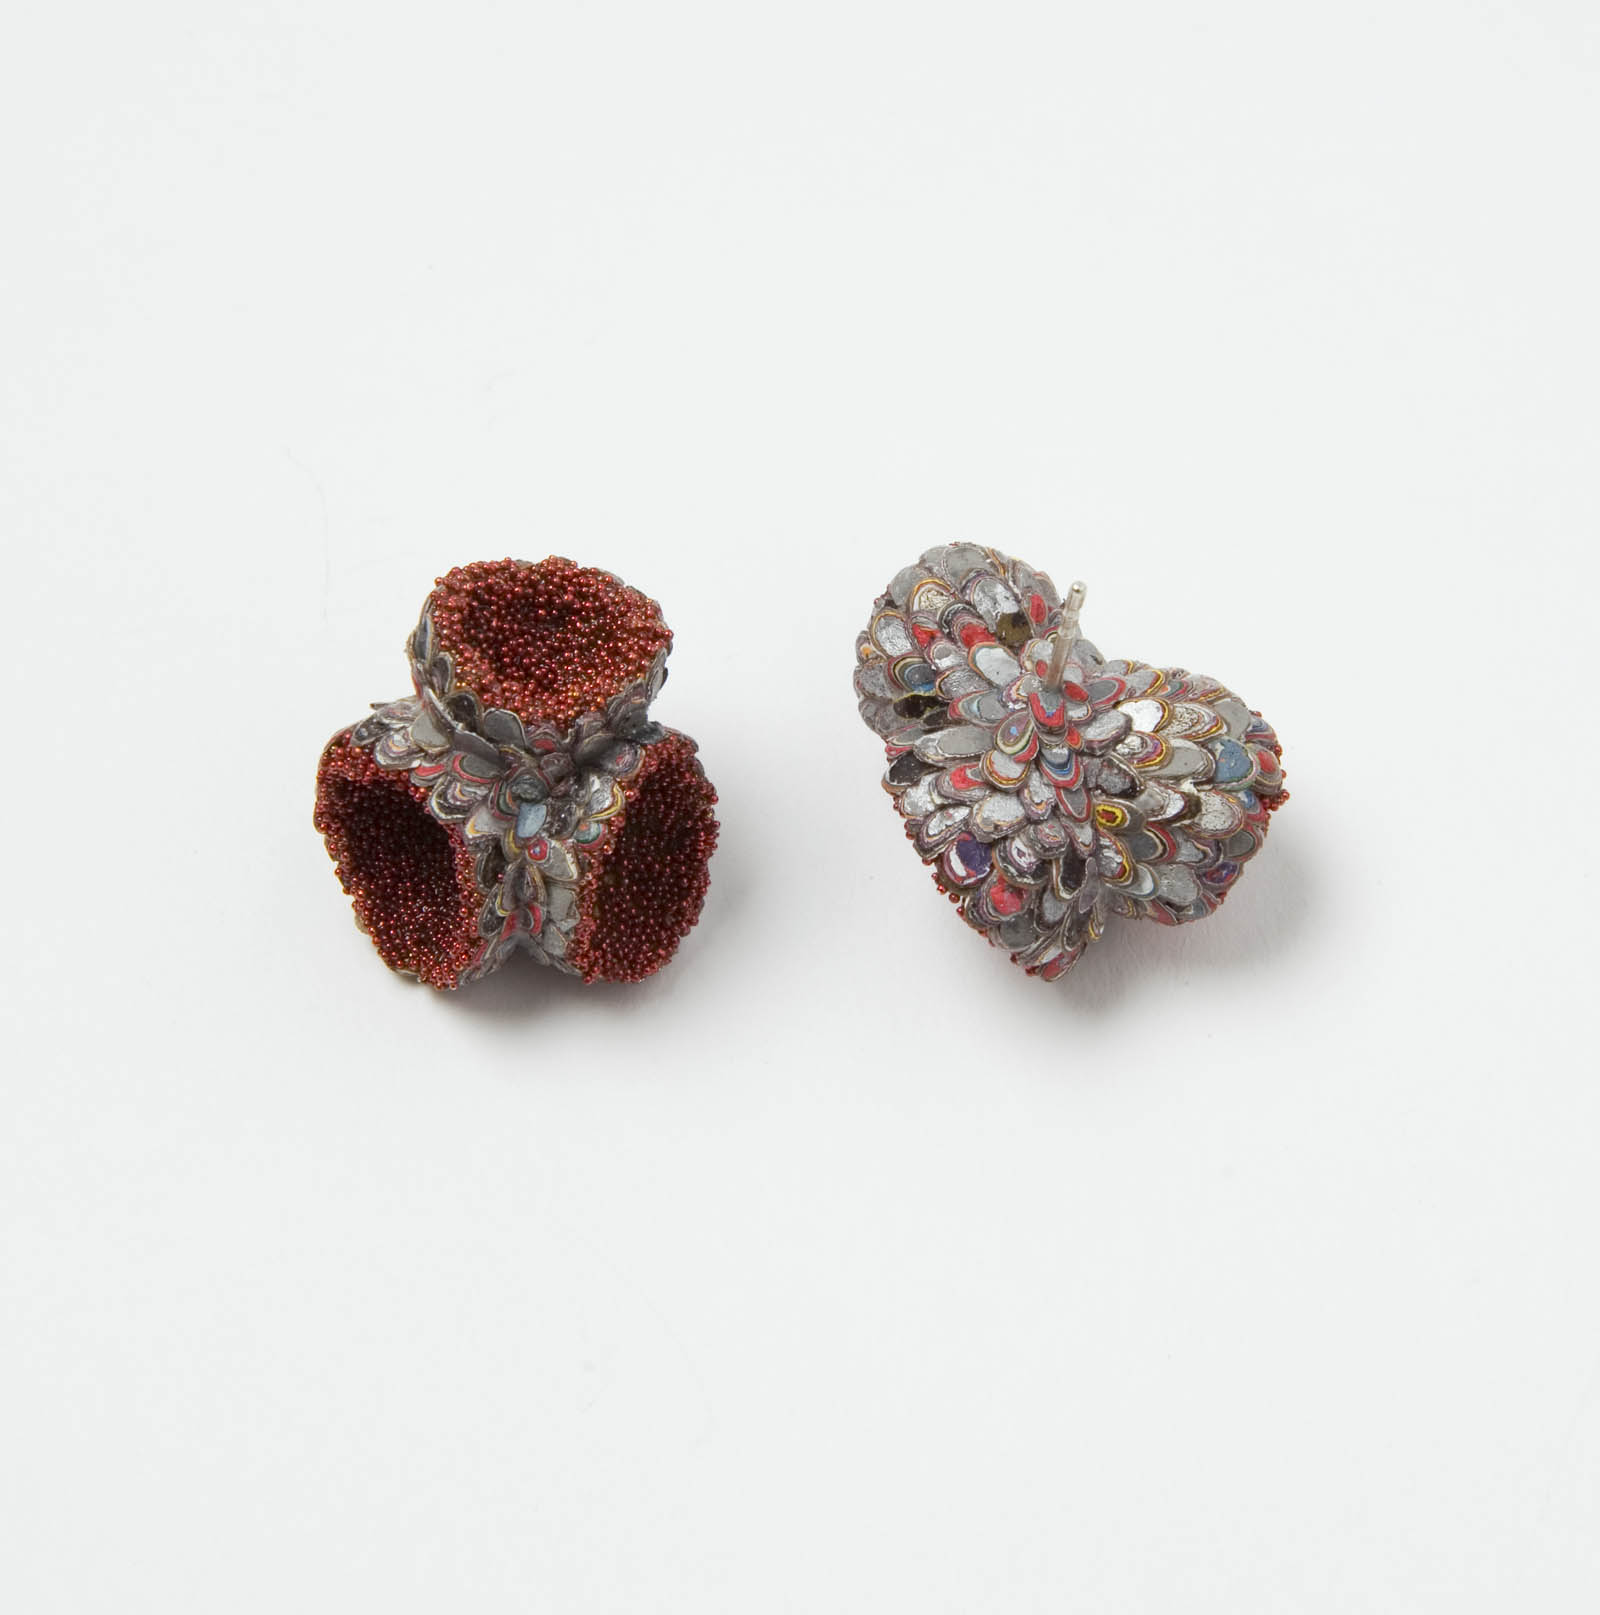 """Posy Shaped Karma Chroma Earrings"" I Earrings, 2016 I Graffiti, almond shells, glass, silver  I Photo: Mirei Takeuchi"